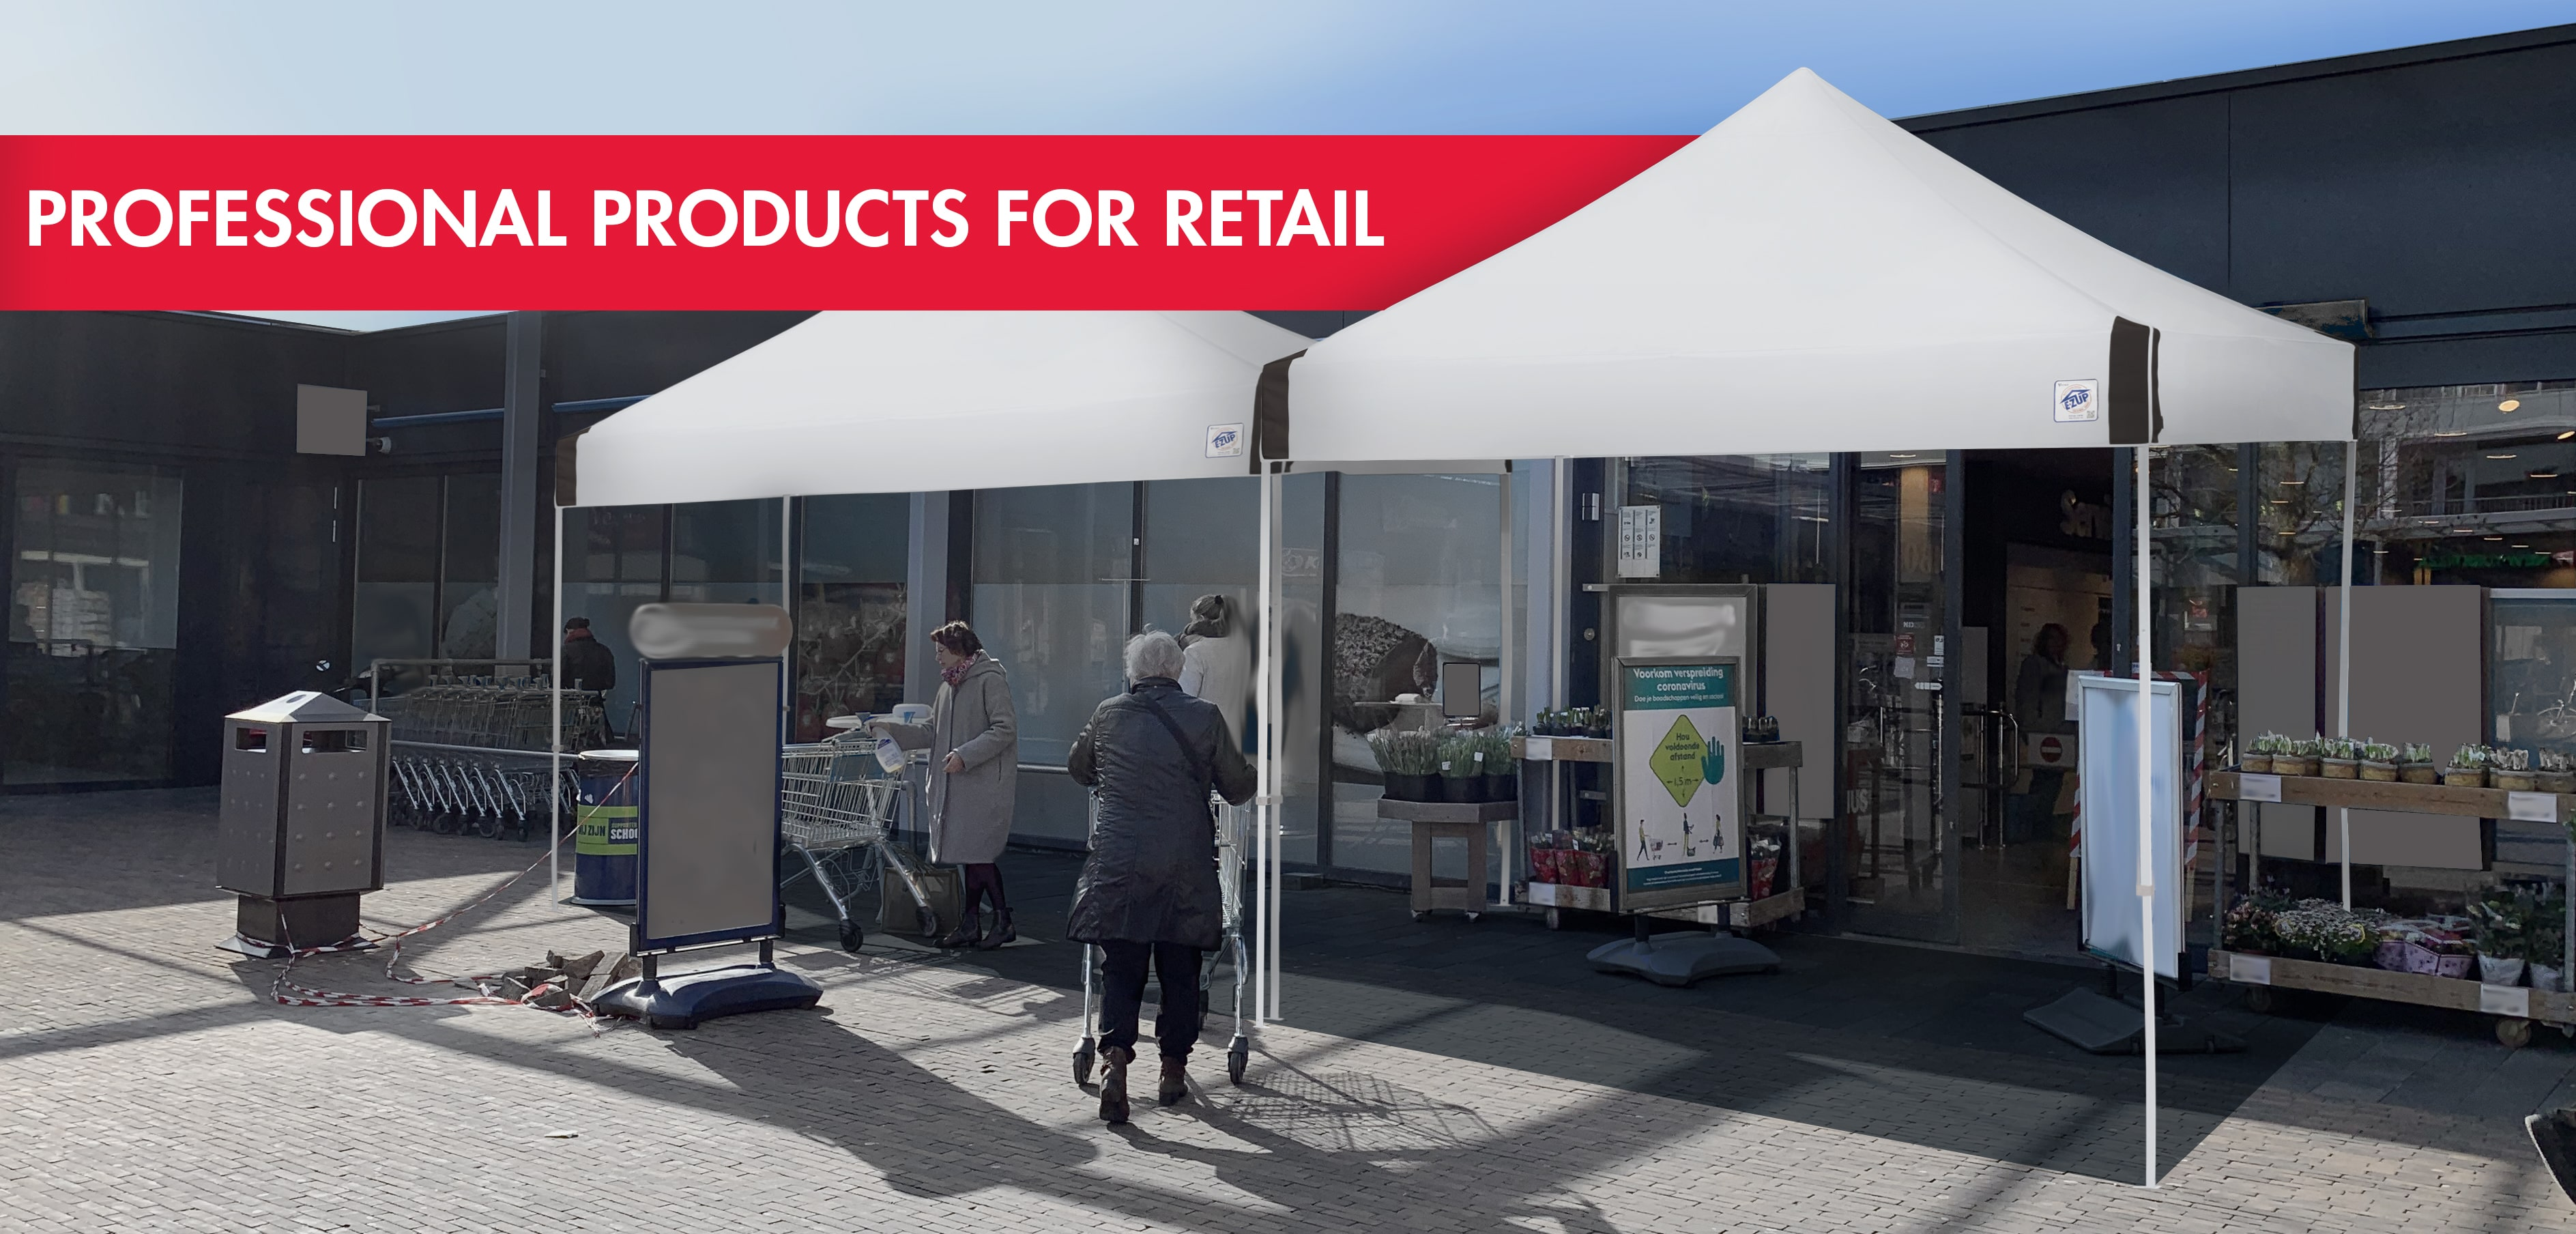 Professional products for retail